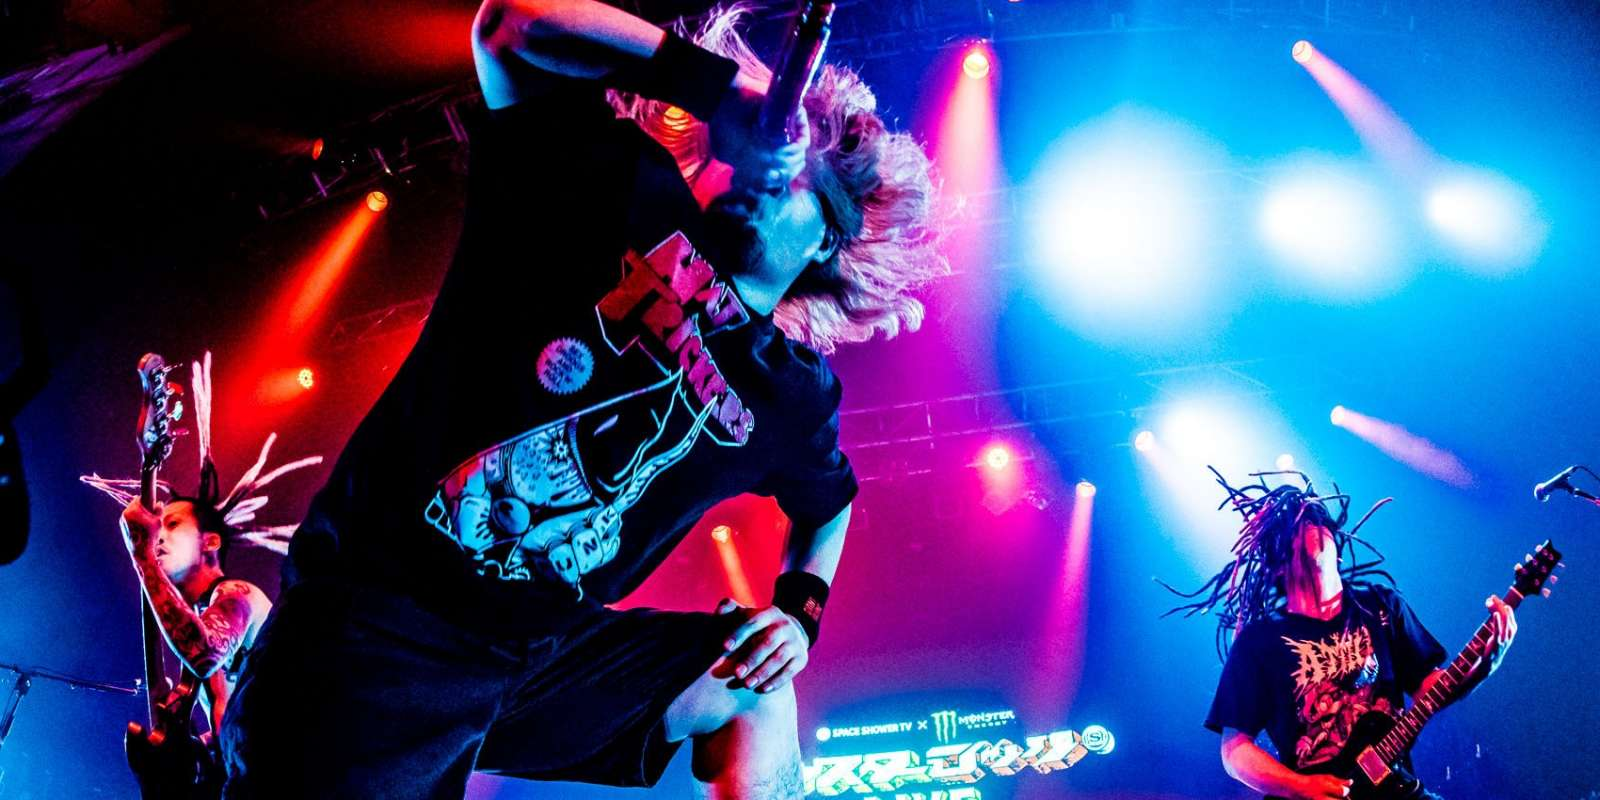 MAXIMUM THE HORMONE at Monster Rock Live 2018 in Tokyo